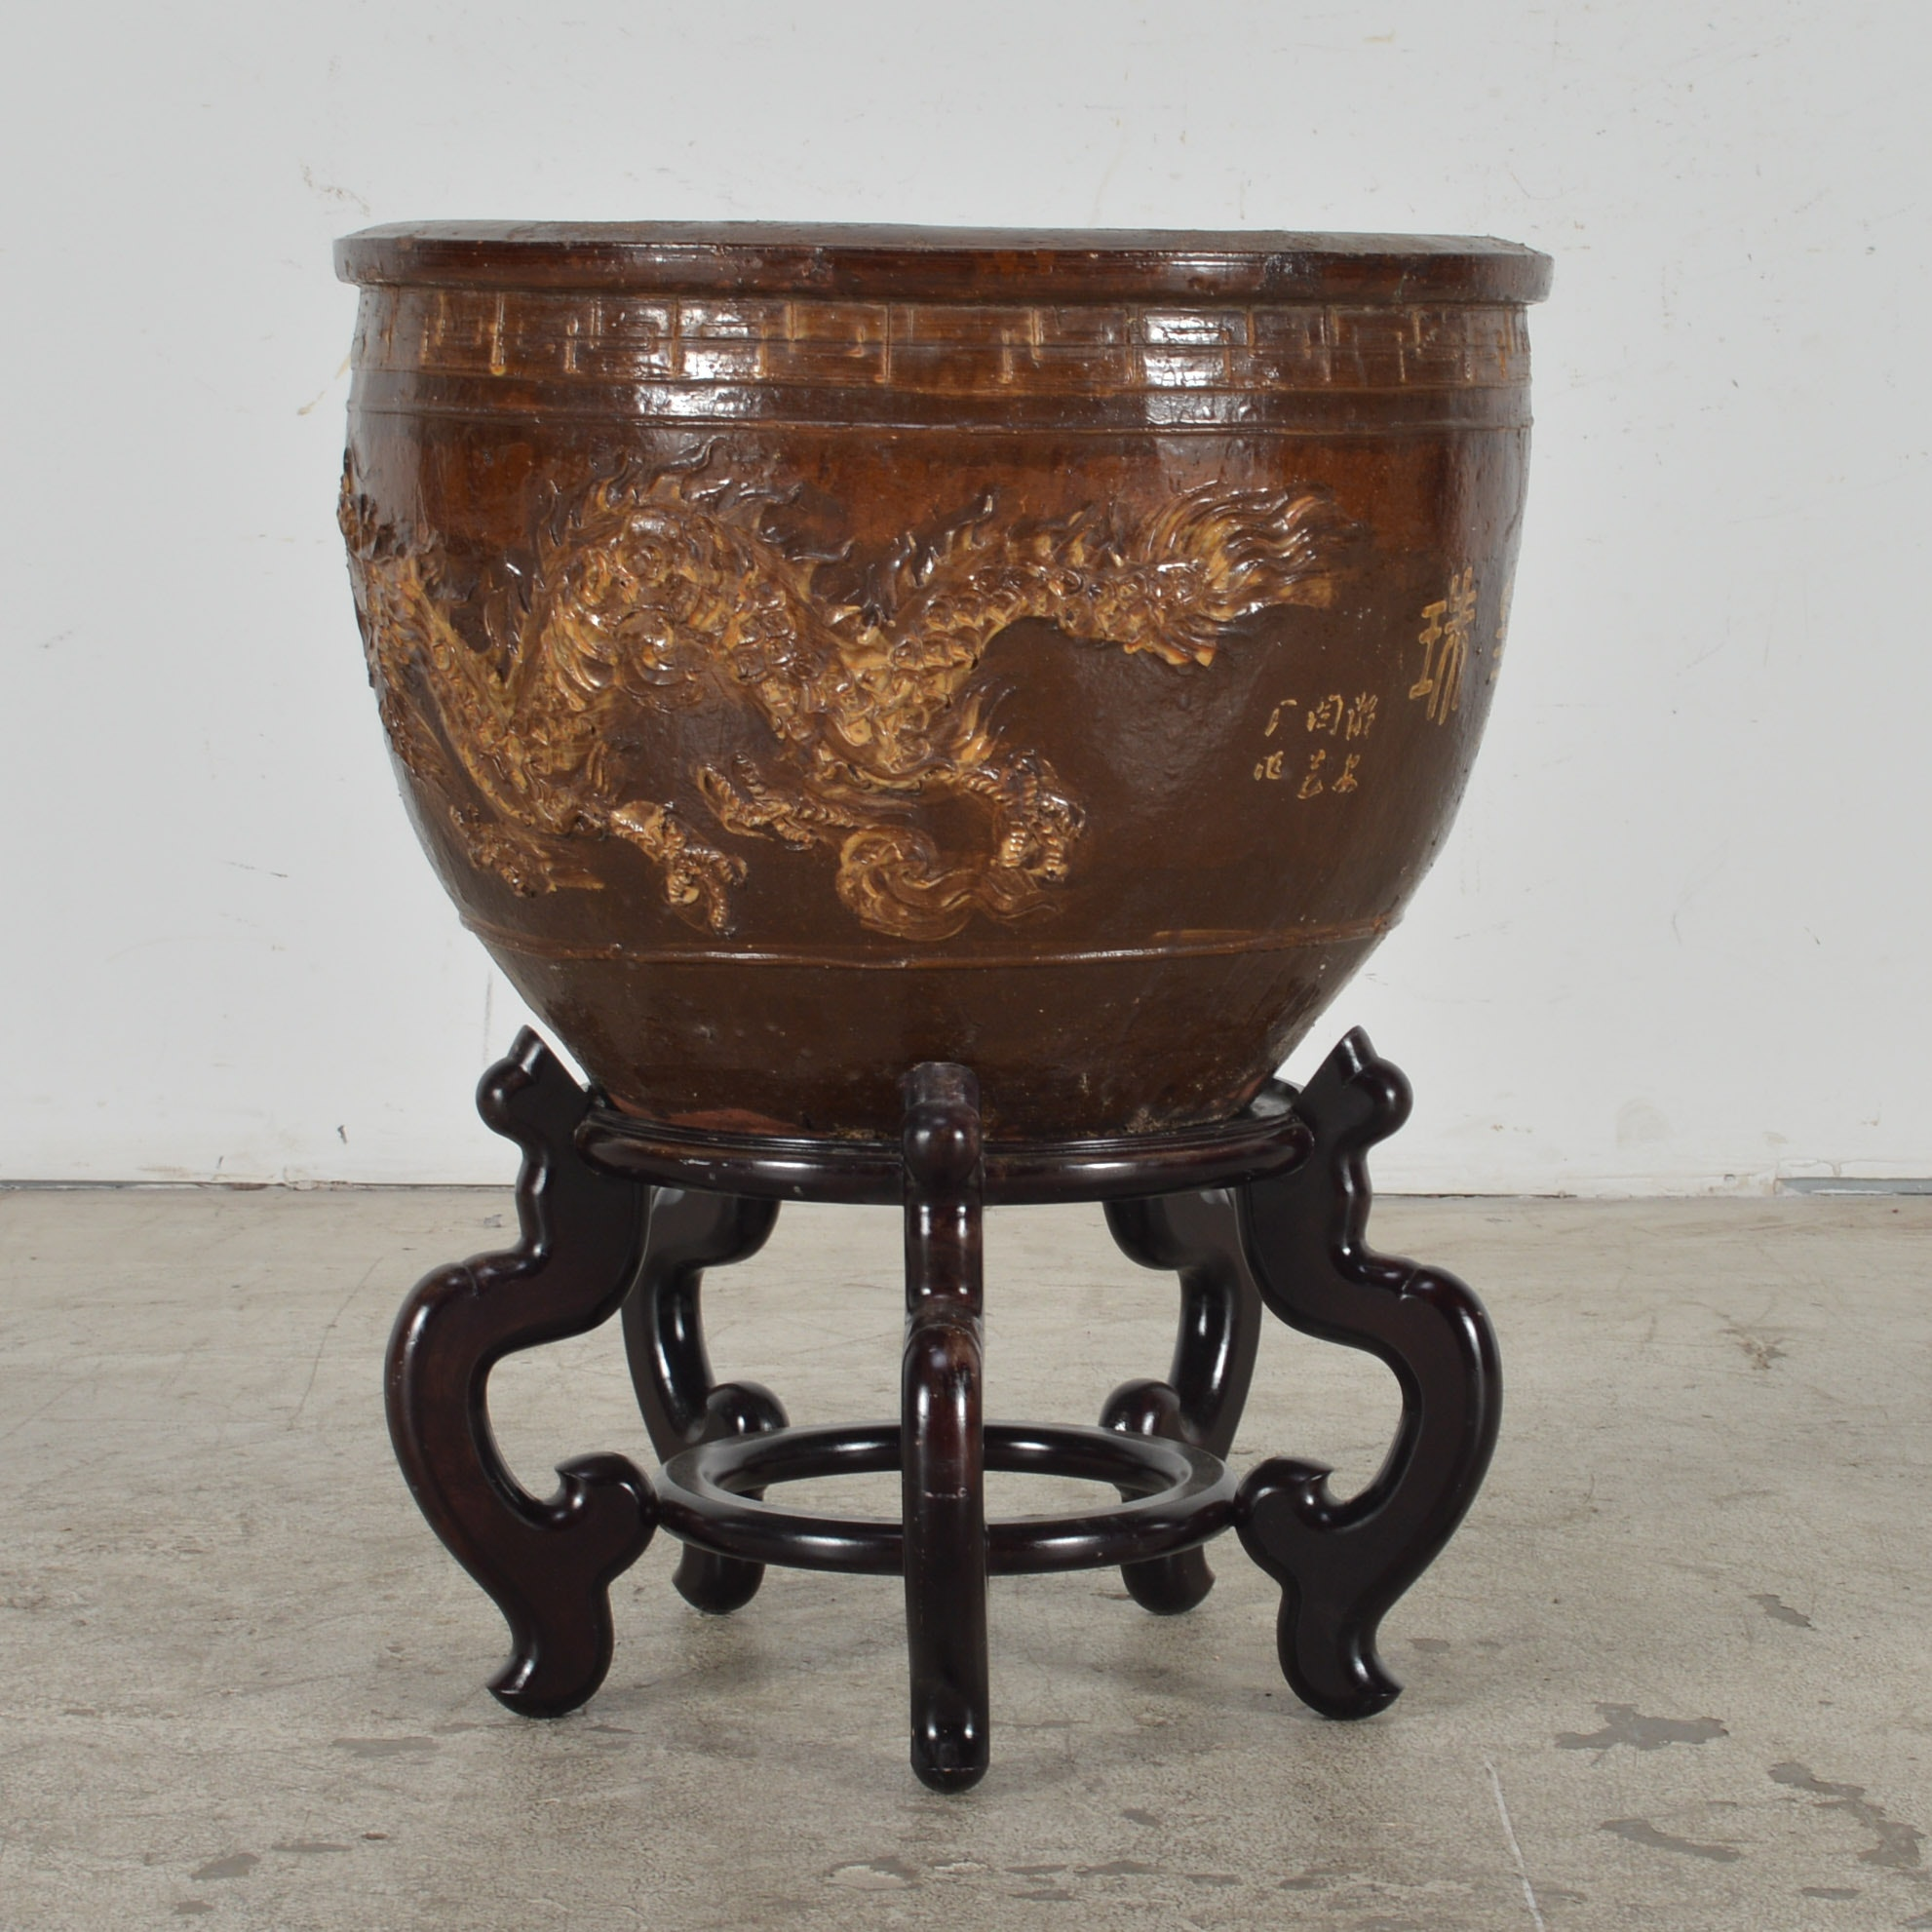 Chinese Dragon Earthenware Pot